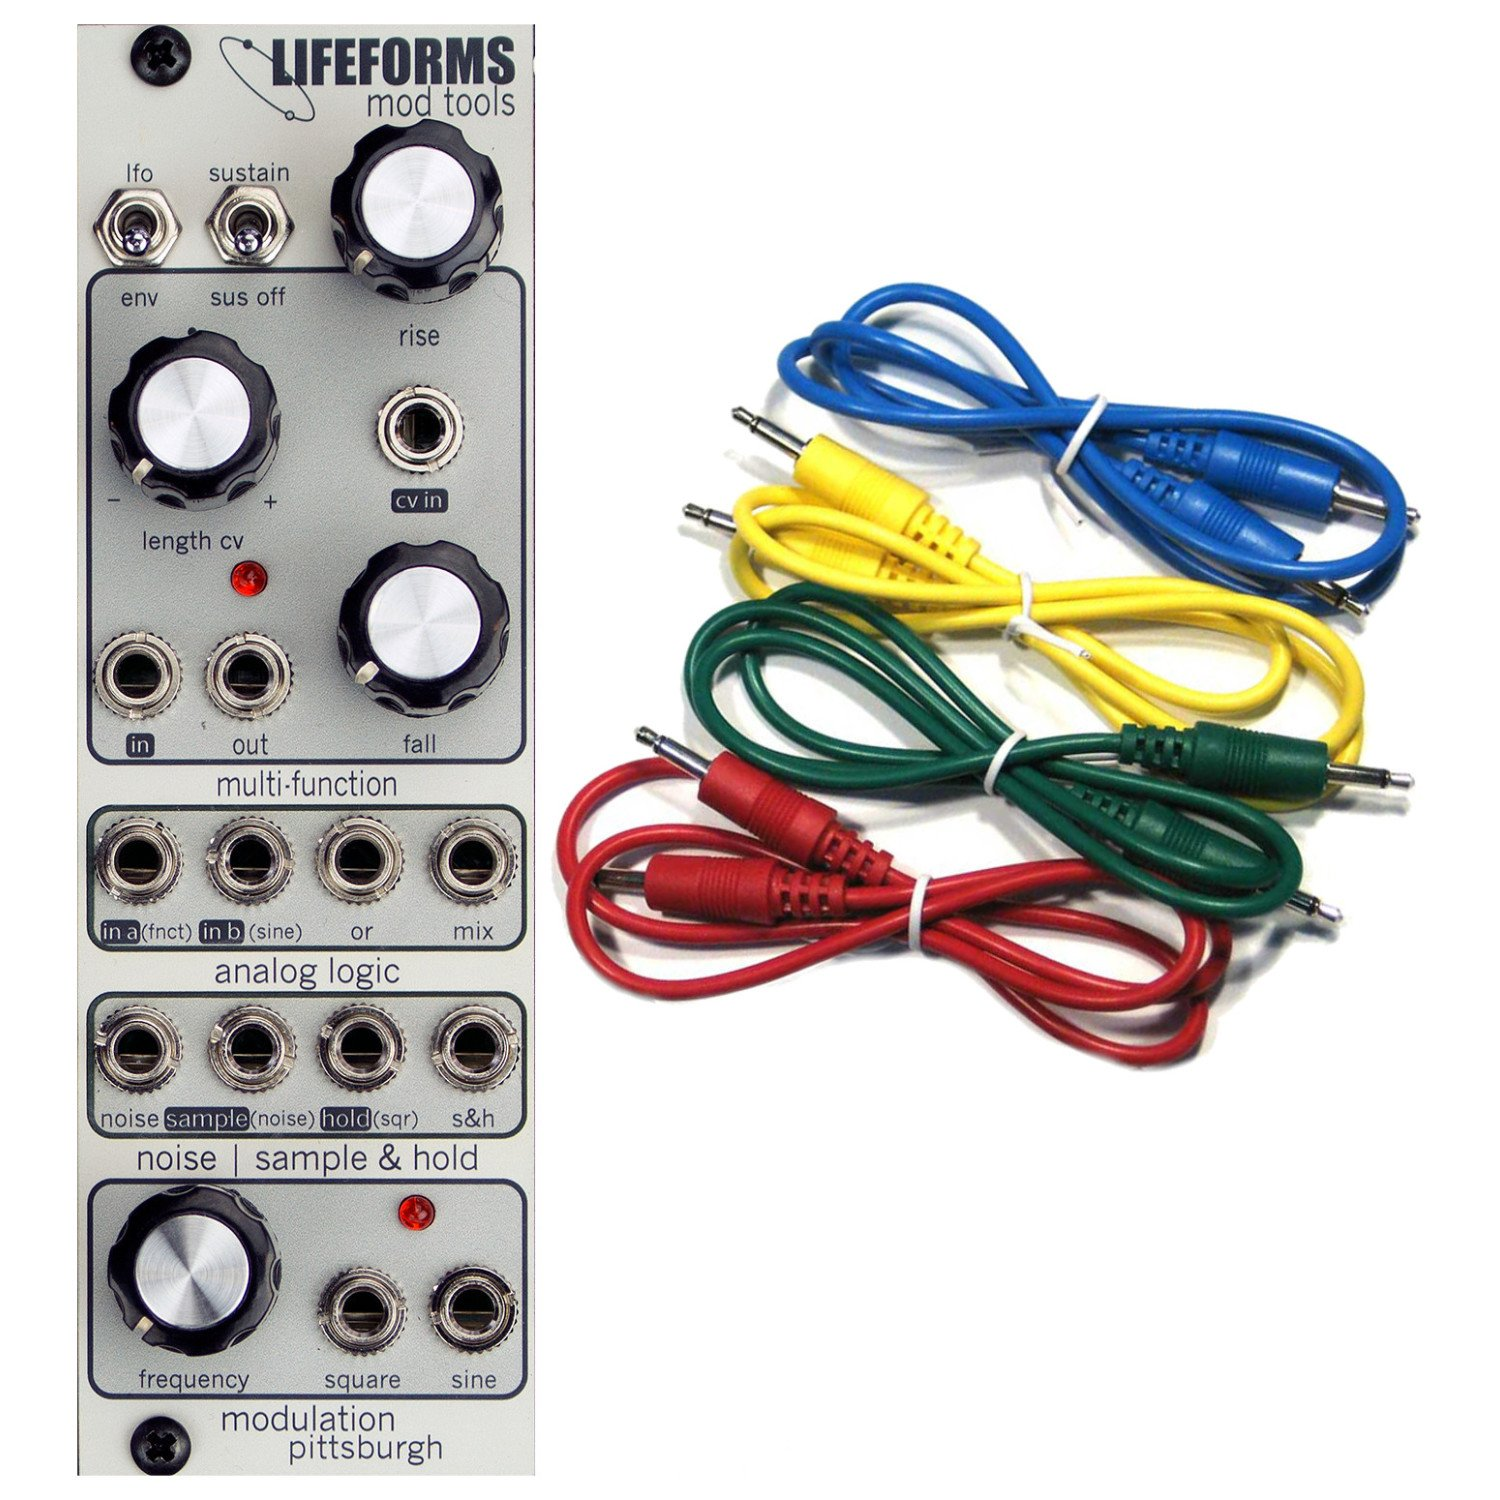 Pittsburgh Modular Lifeforms Mod Tools Modulation Source Eurorack Synth Module w/ 4 Cables